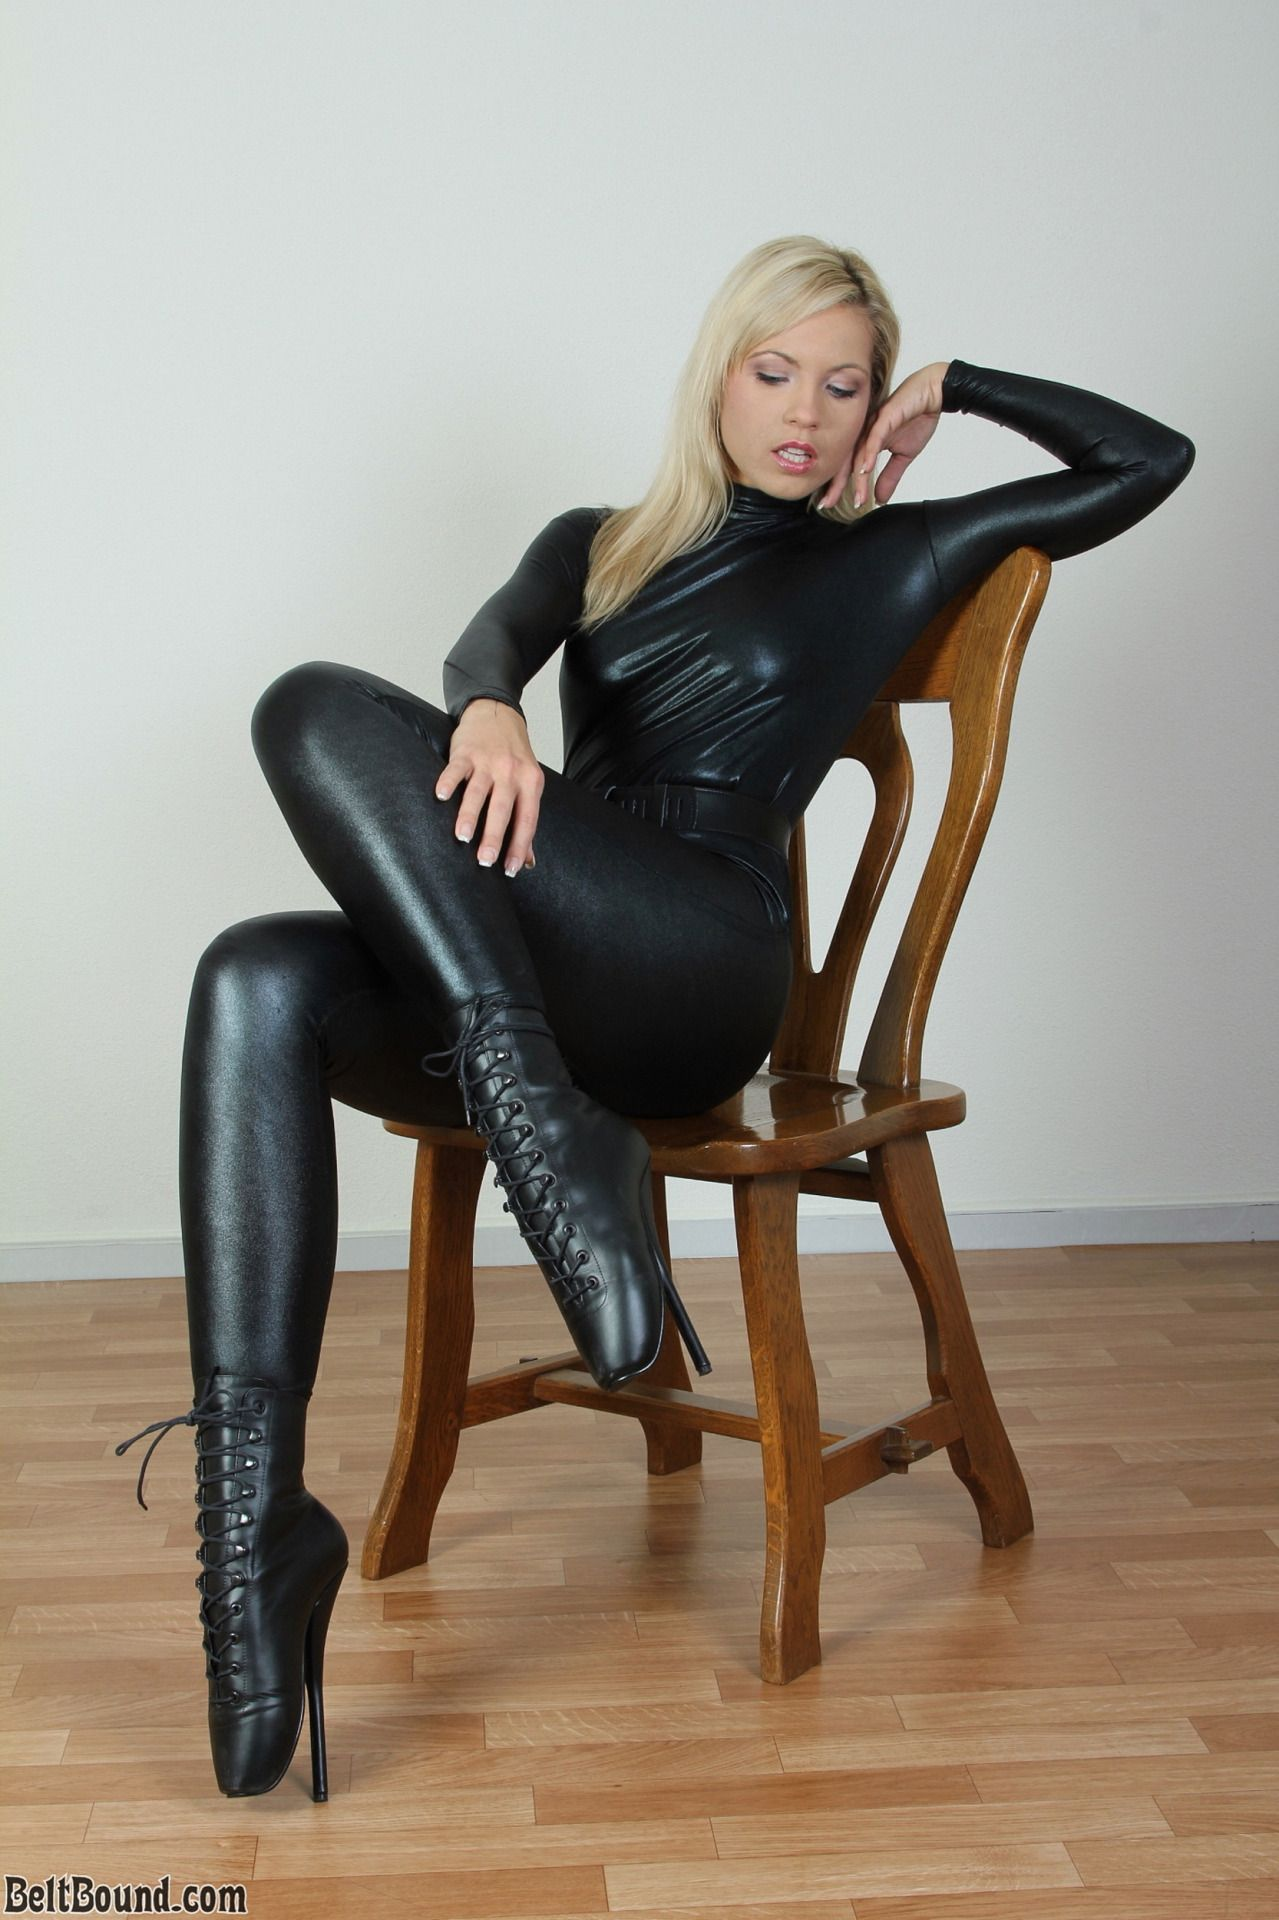 submissive-woman-in-leather